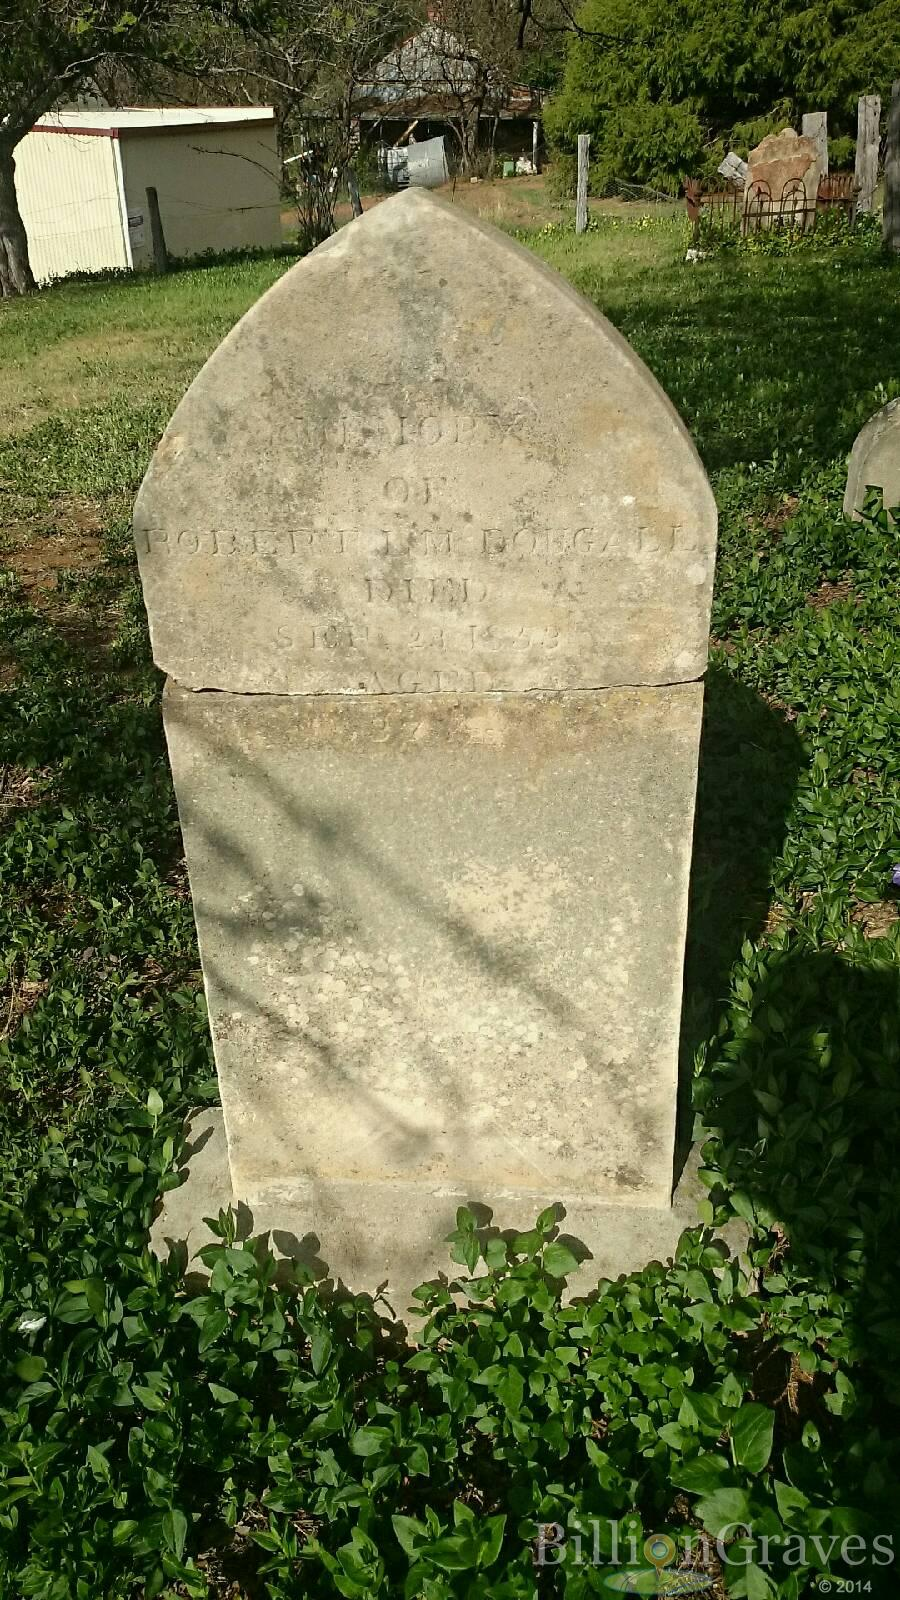 Robert Lovell McDOUGALL - NSWPF - Died 23 Sept 1853 - grave 1